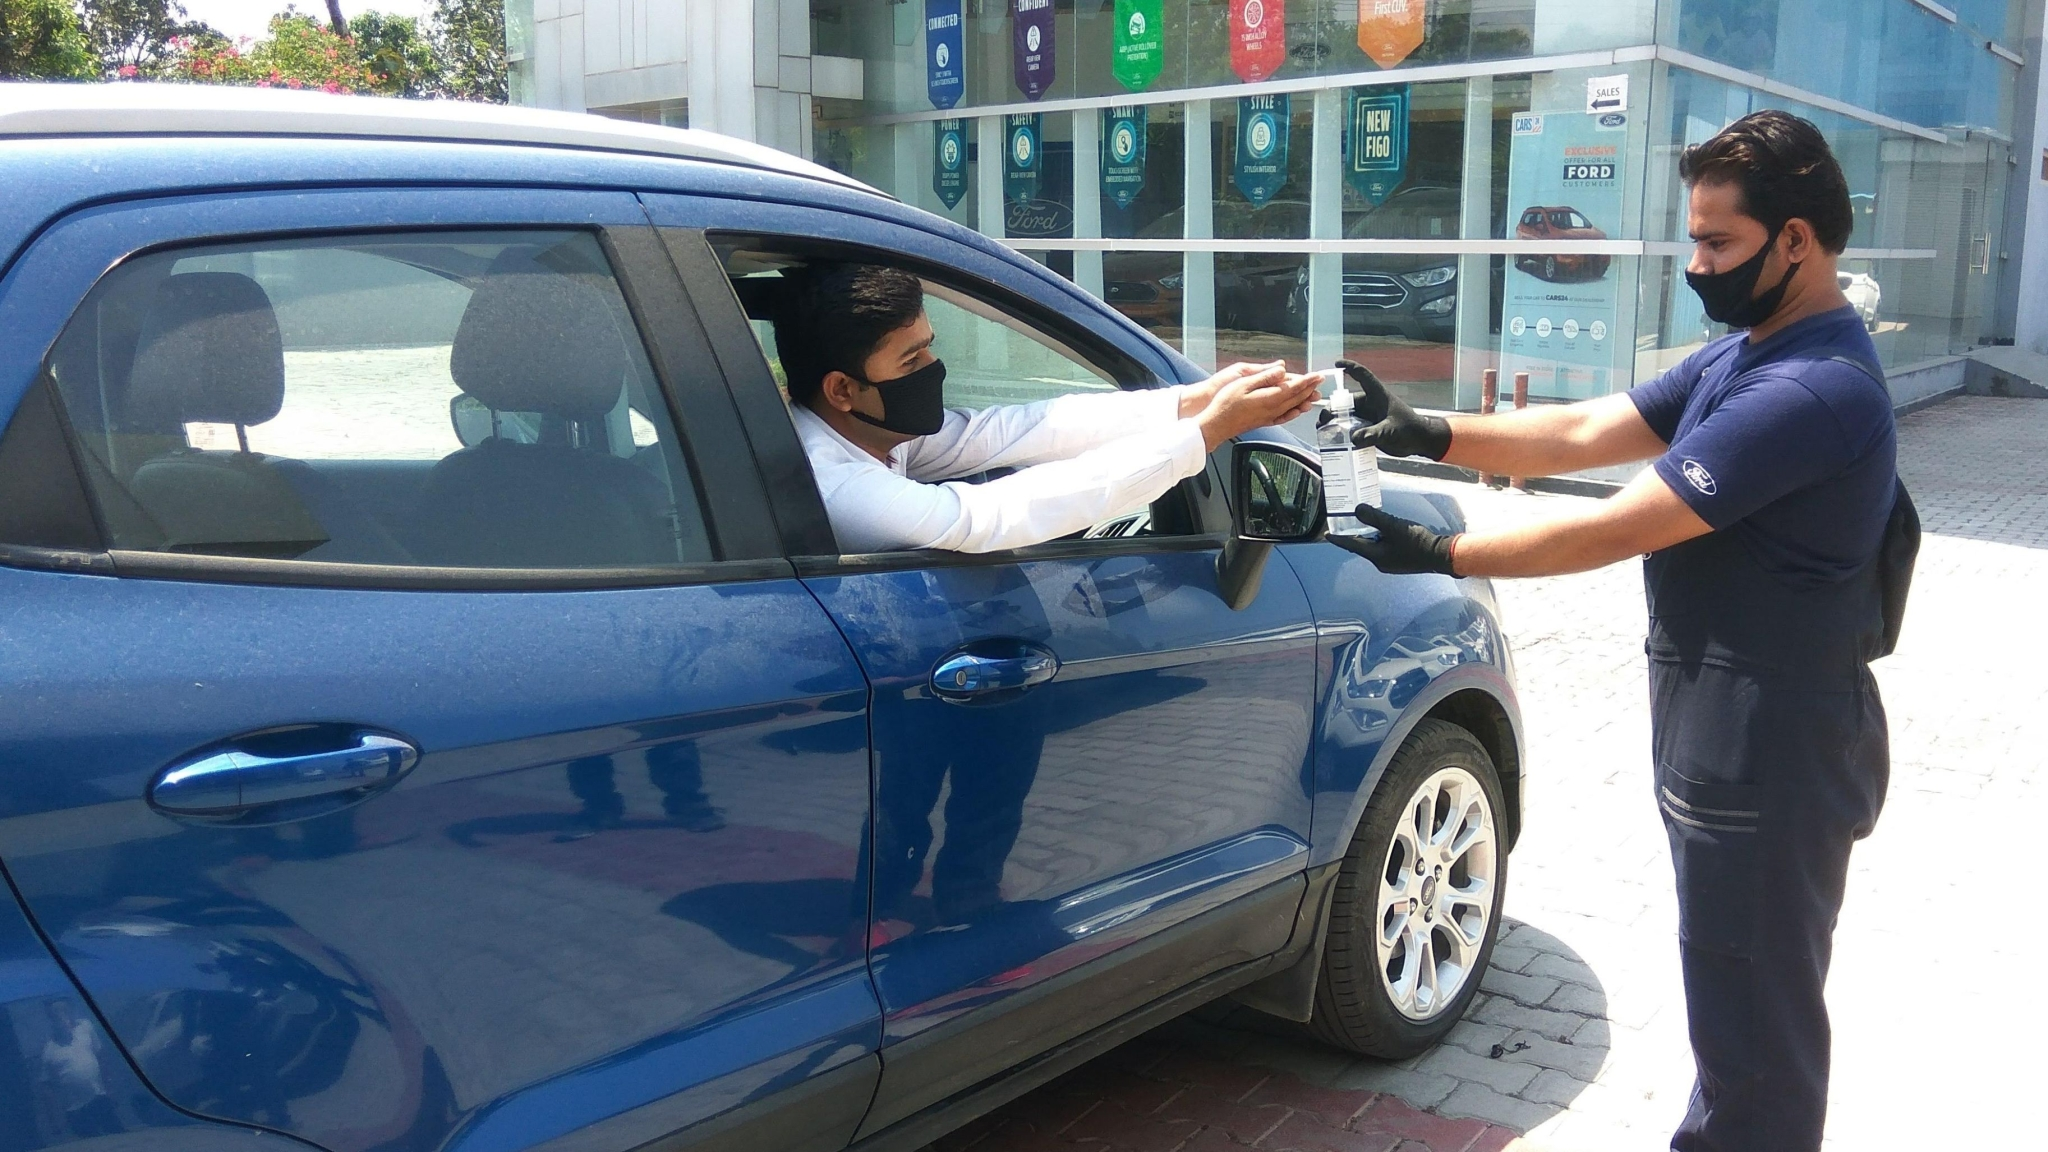 Car-Buying After Lockdown: New Business Models Emerge